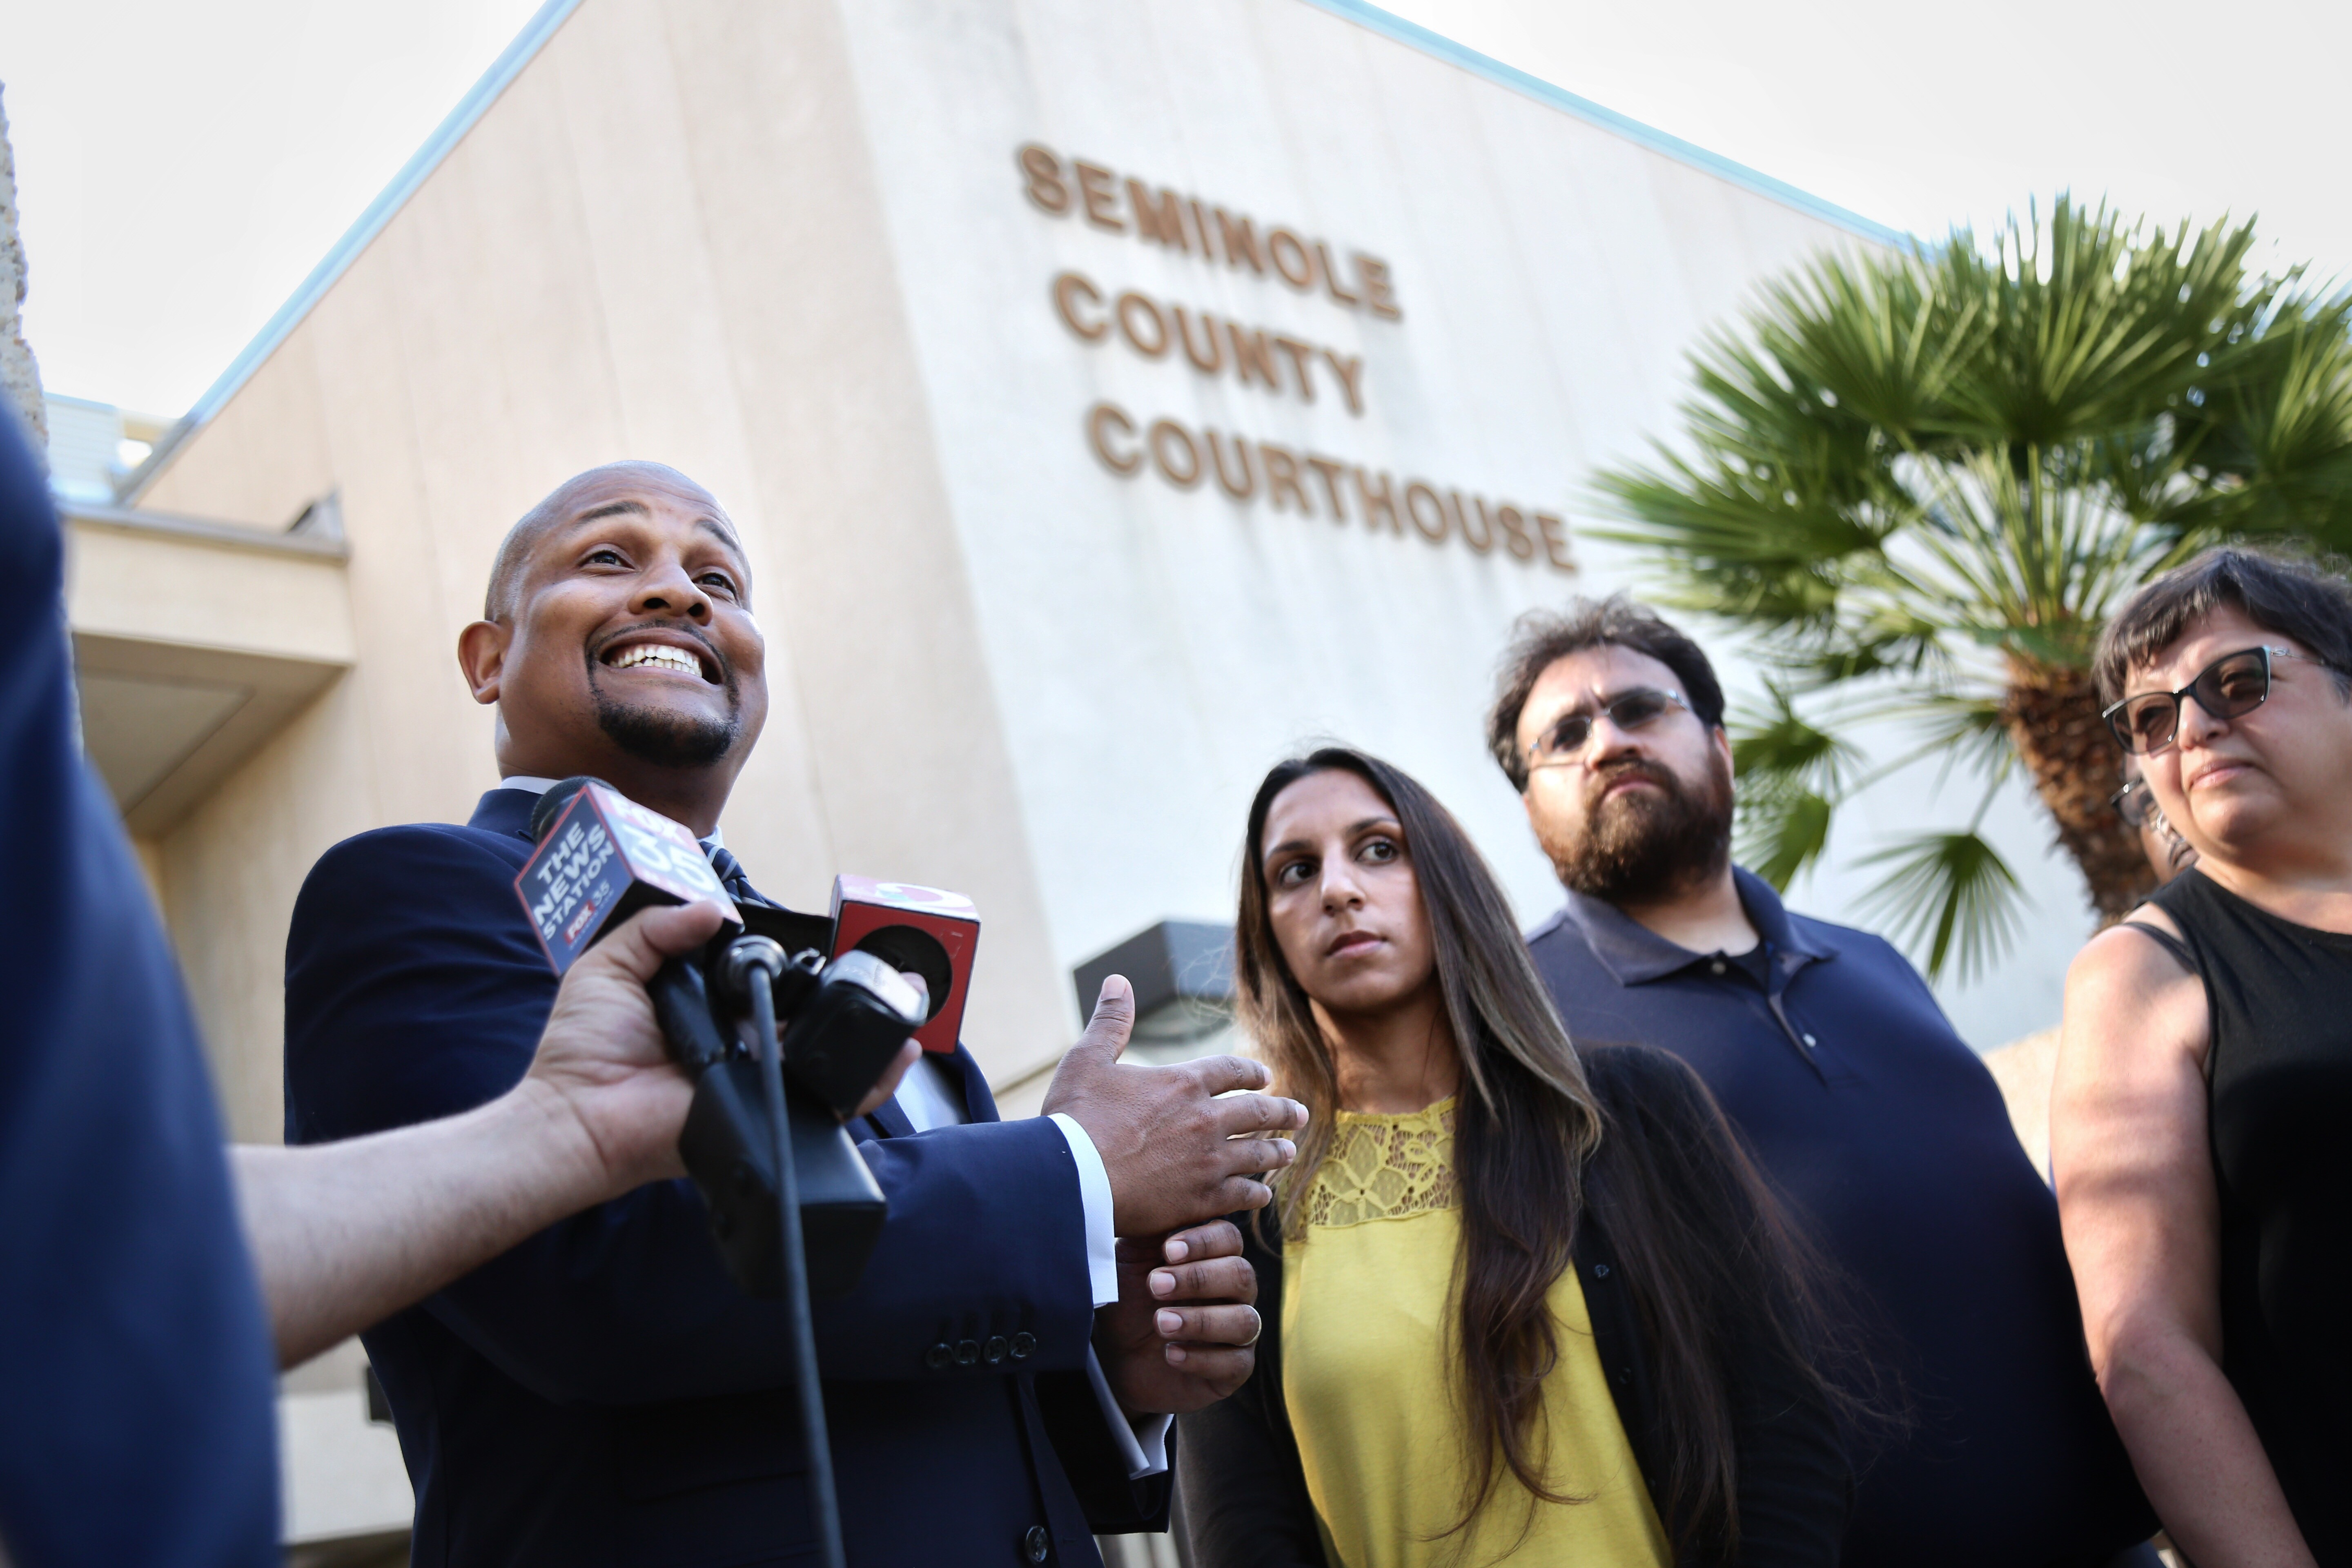 Advocates renew call for Seminole tax collector to resign in wake of